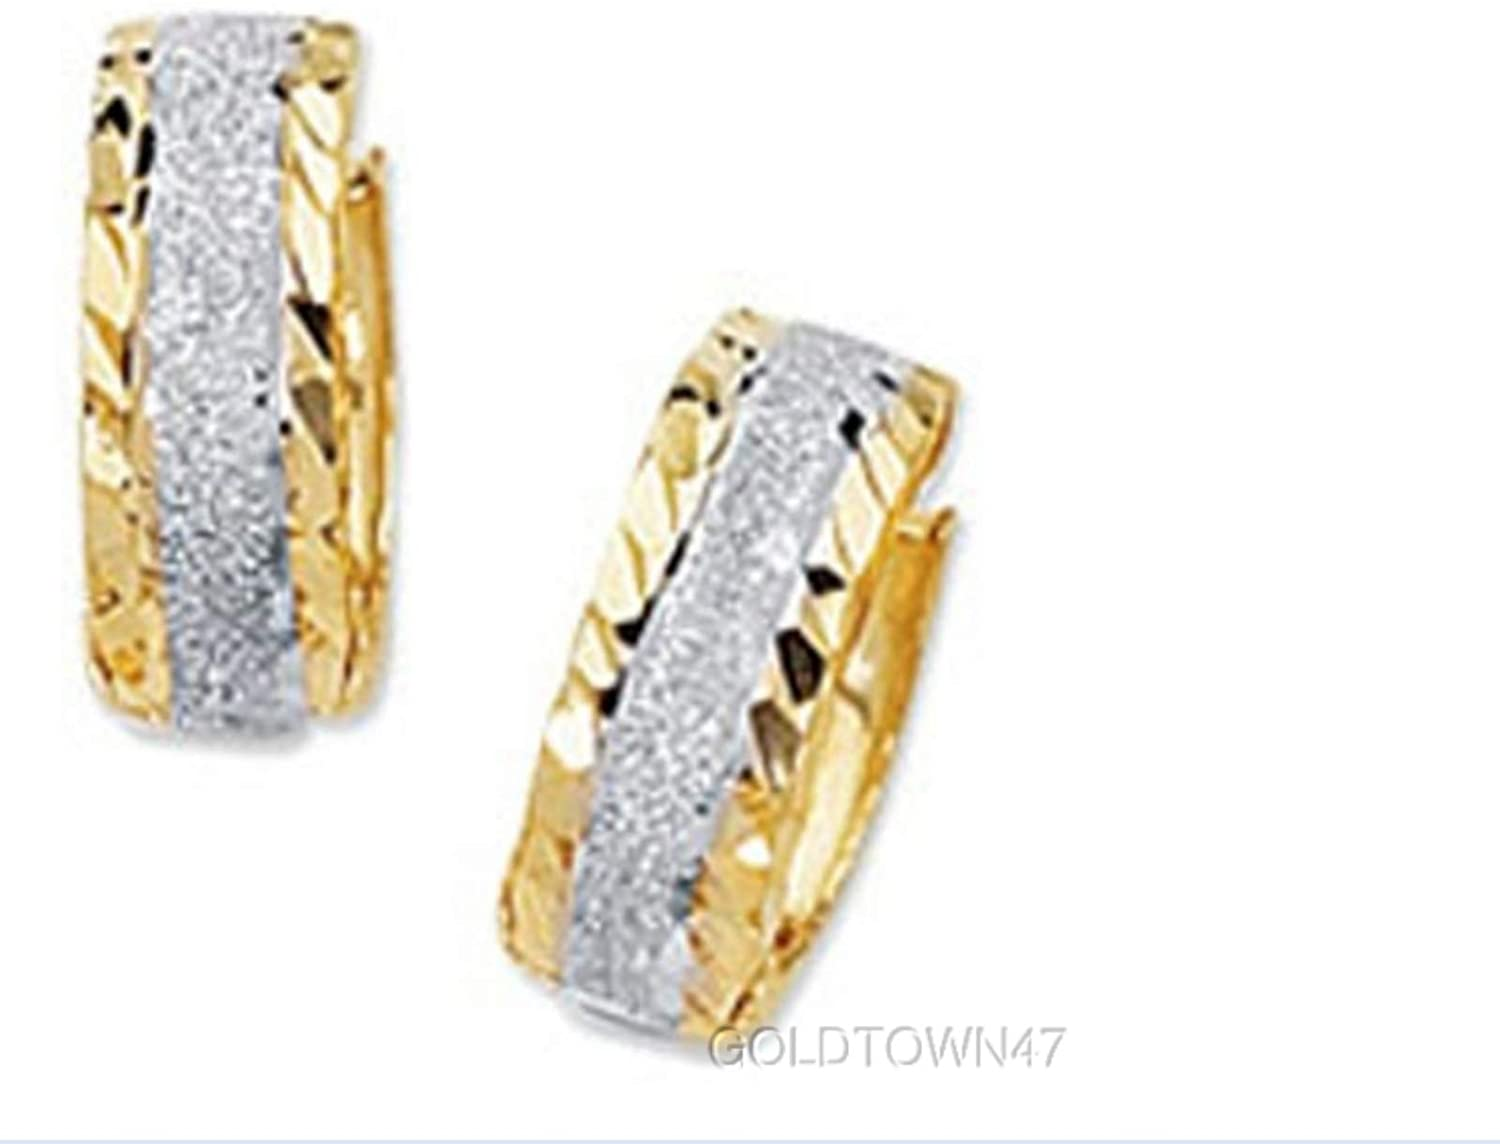 Huggie Earring in 14K Yellow+White Gold Shiny Two Tone with Sparkle